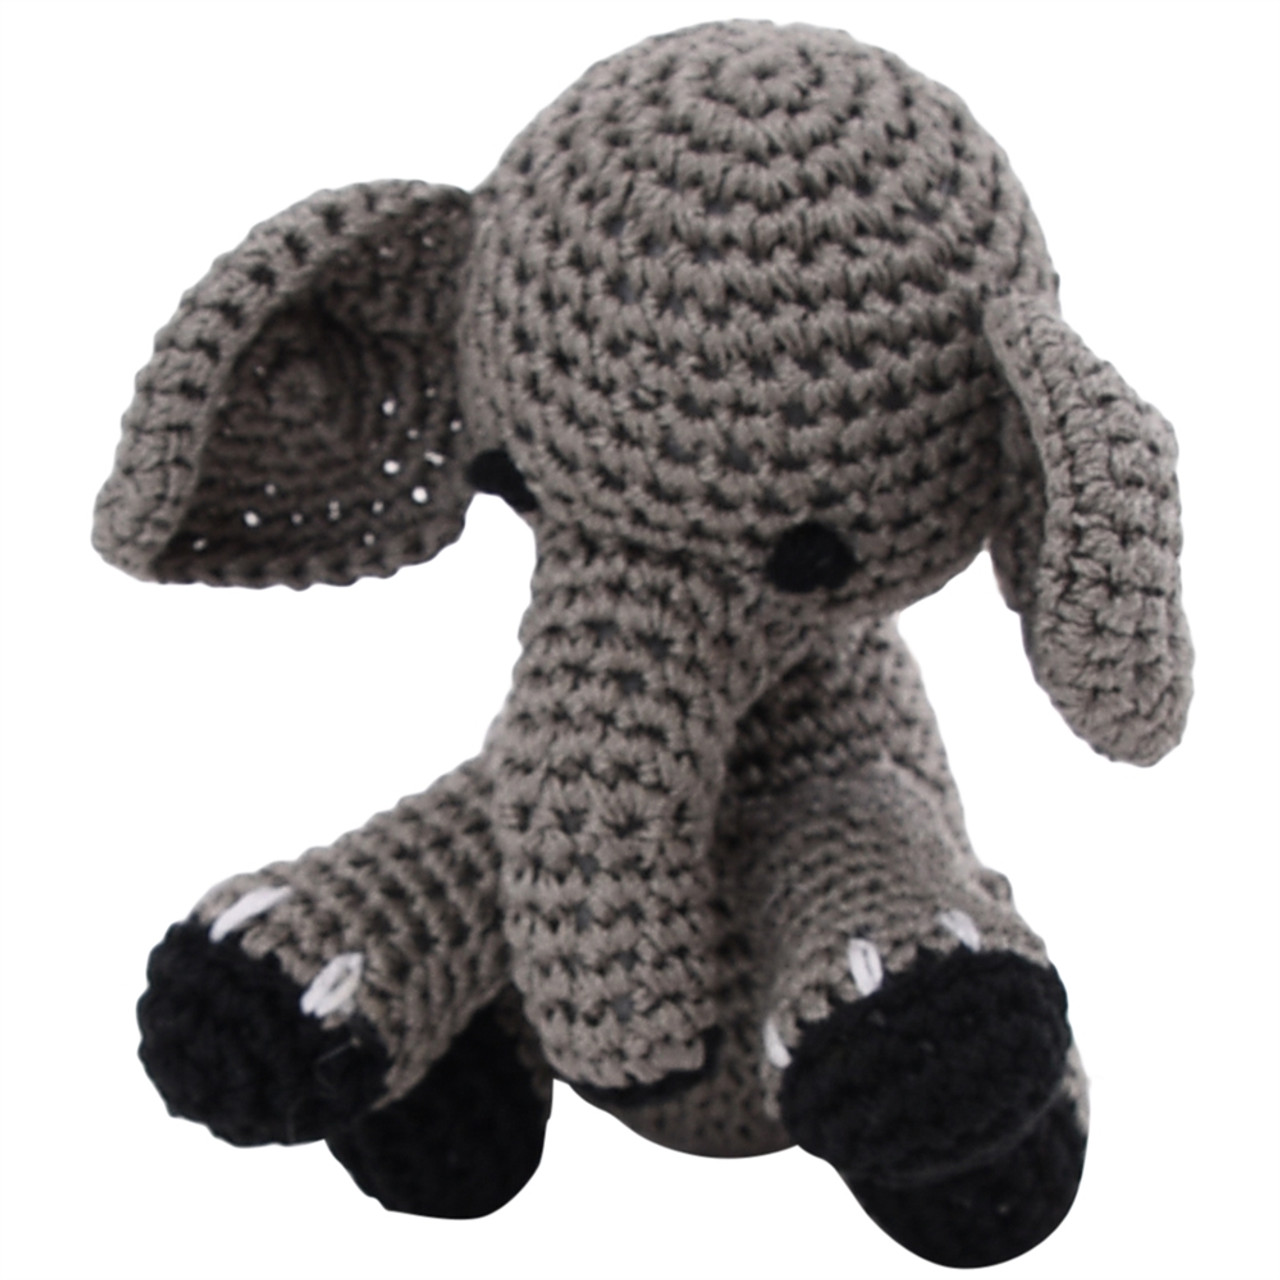 Organic Dog or Cat Toy  - Elephant with Squeaker